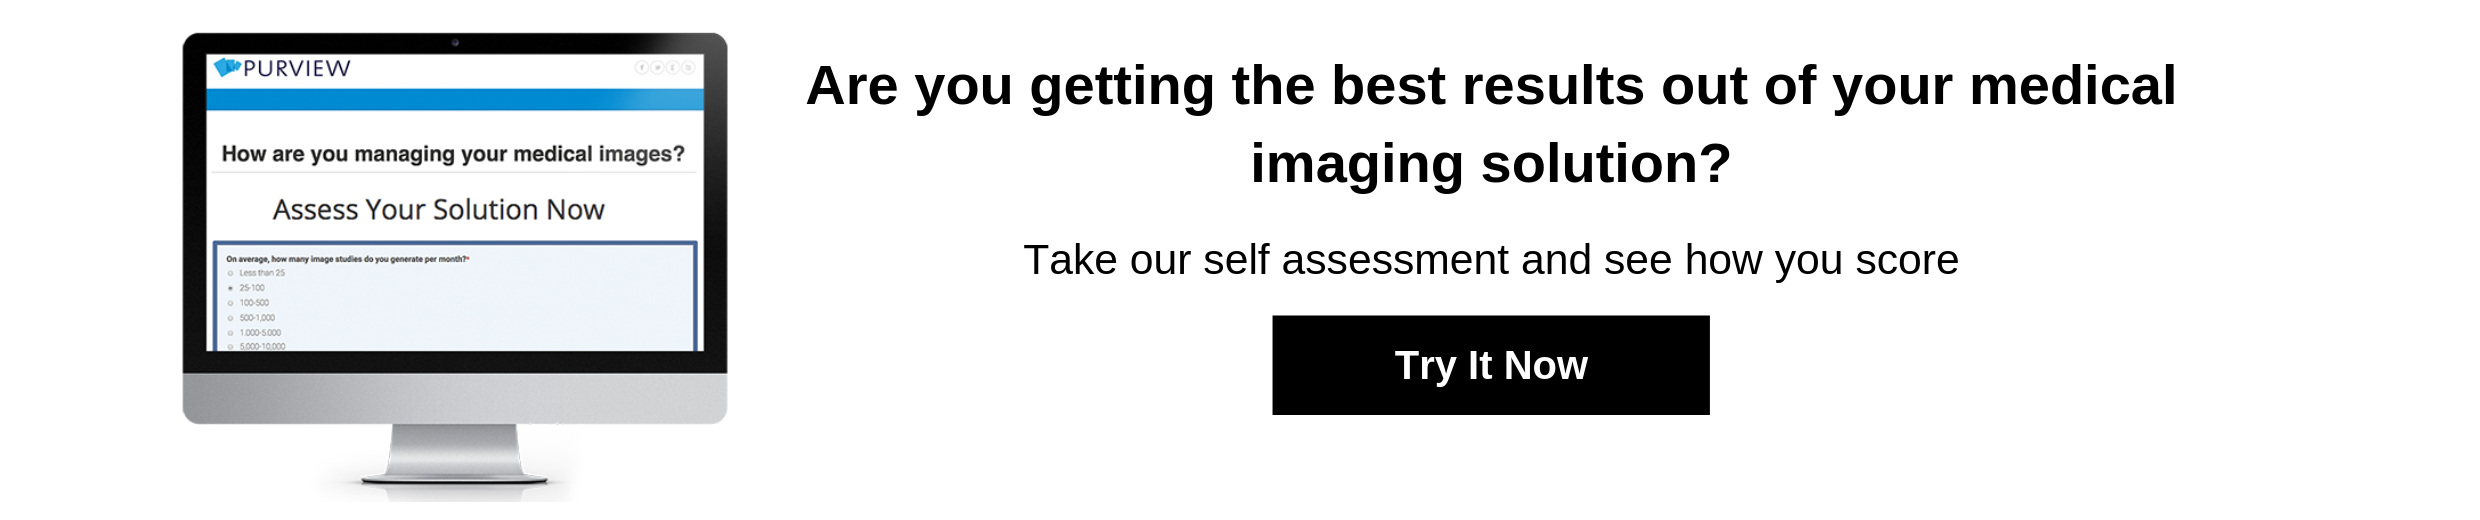 Are you getting the best results out of your medical imaging solution?-2